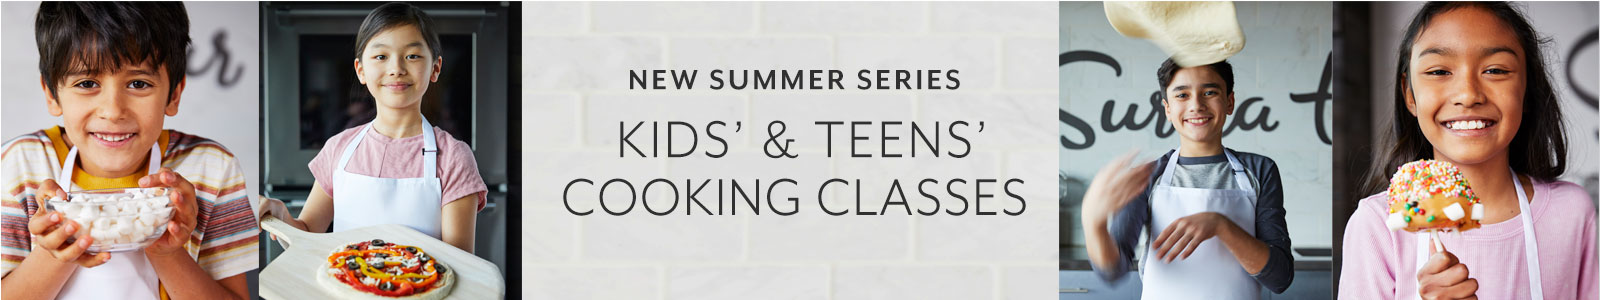 Summer Series For Kids And Teens At Sur La Table